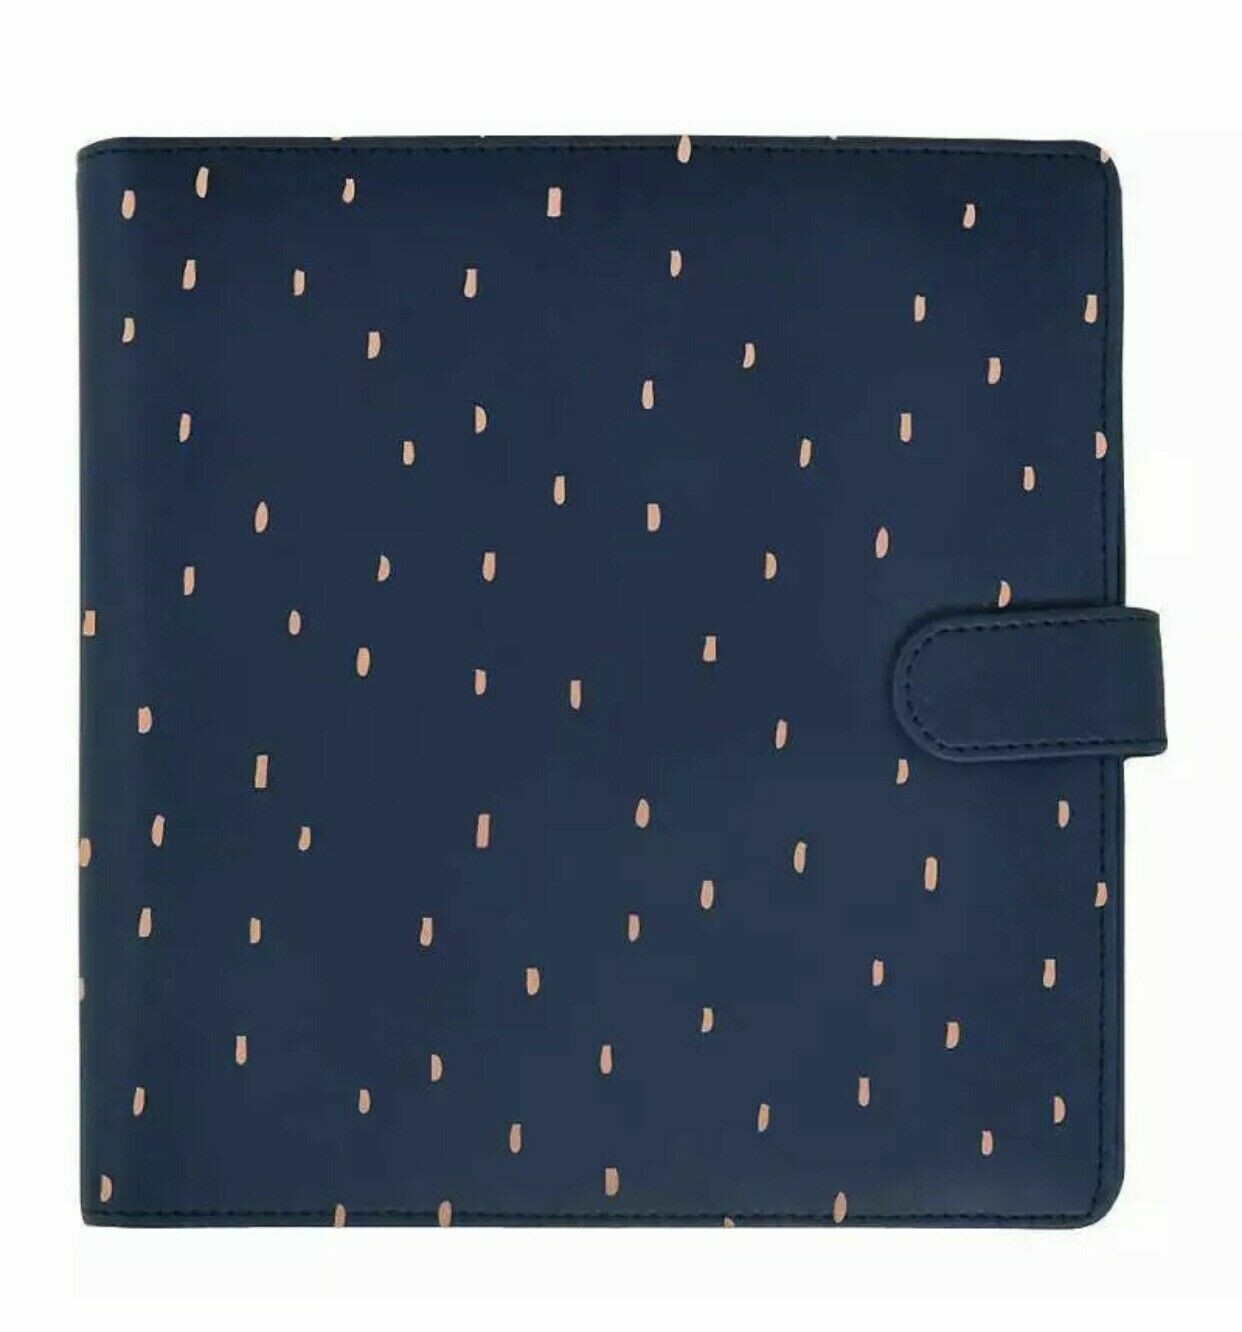 "Kaisercraft Planner 9""X9"" Navy W/Rose Gold Foil Accent"